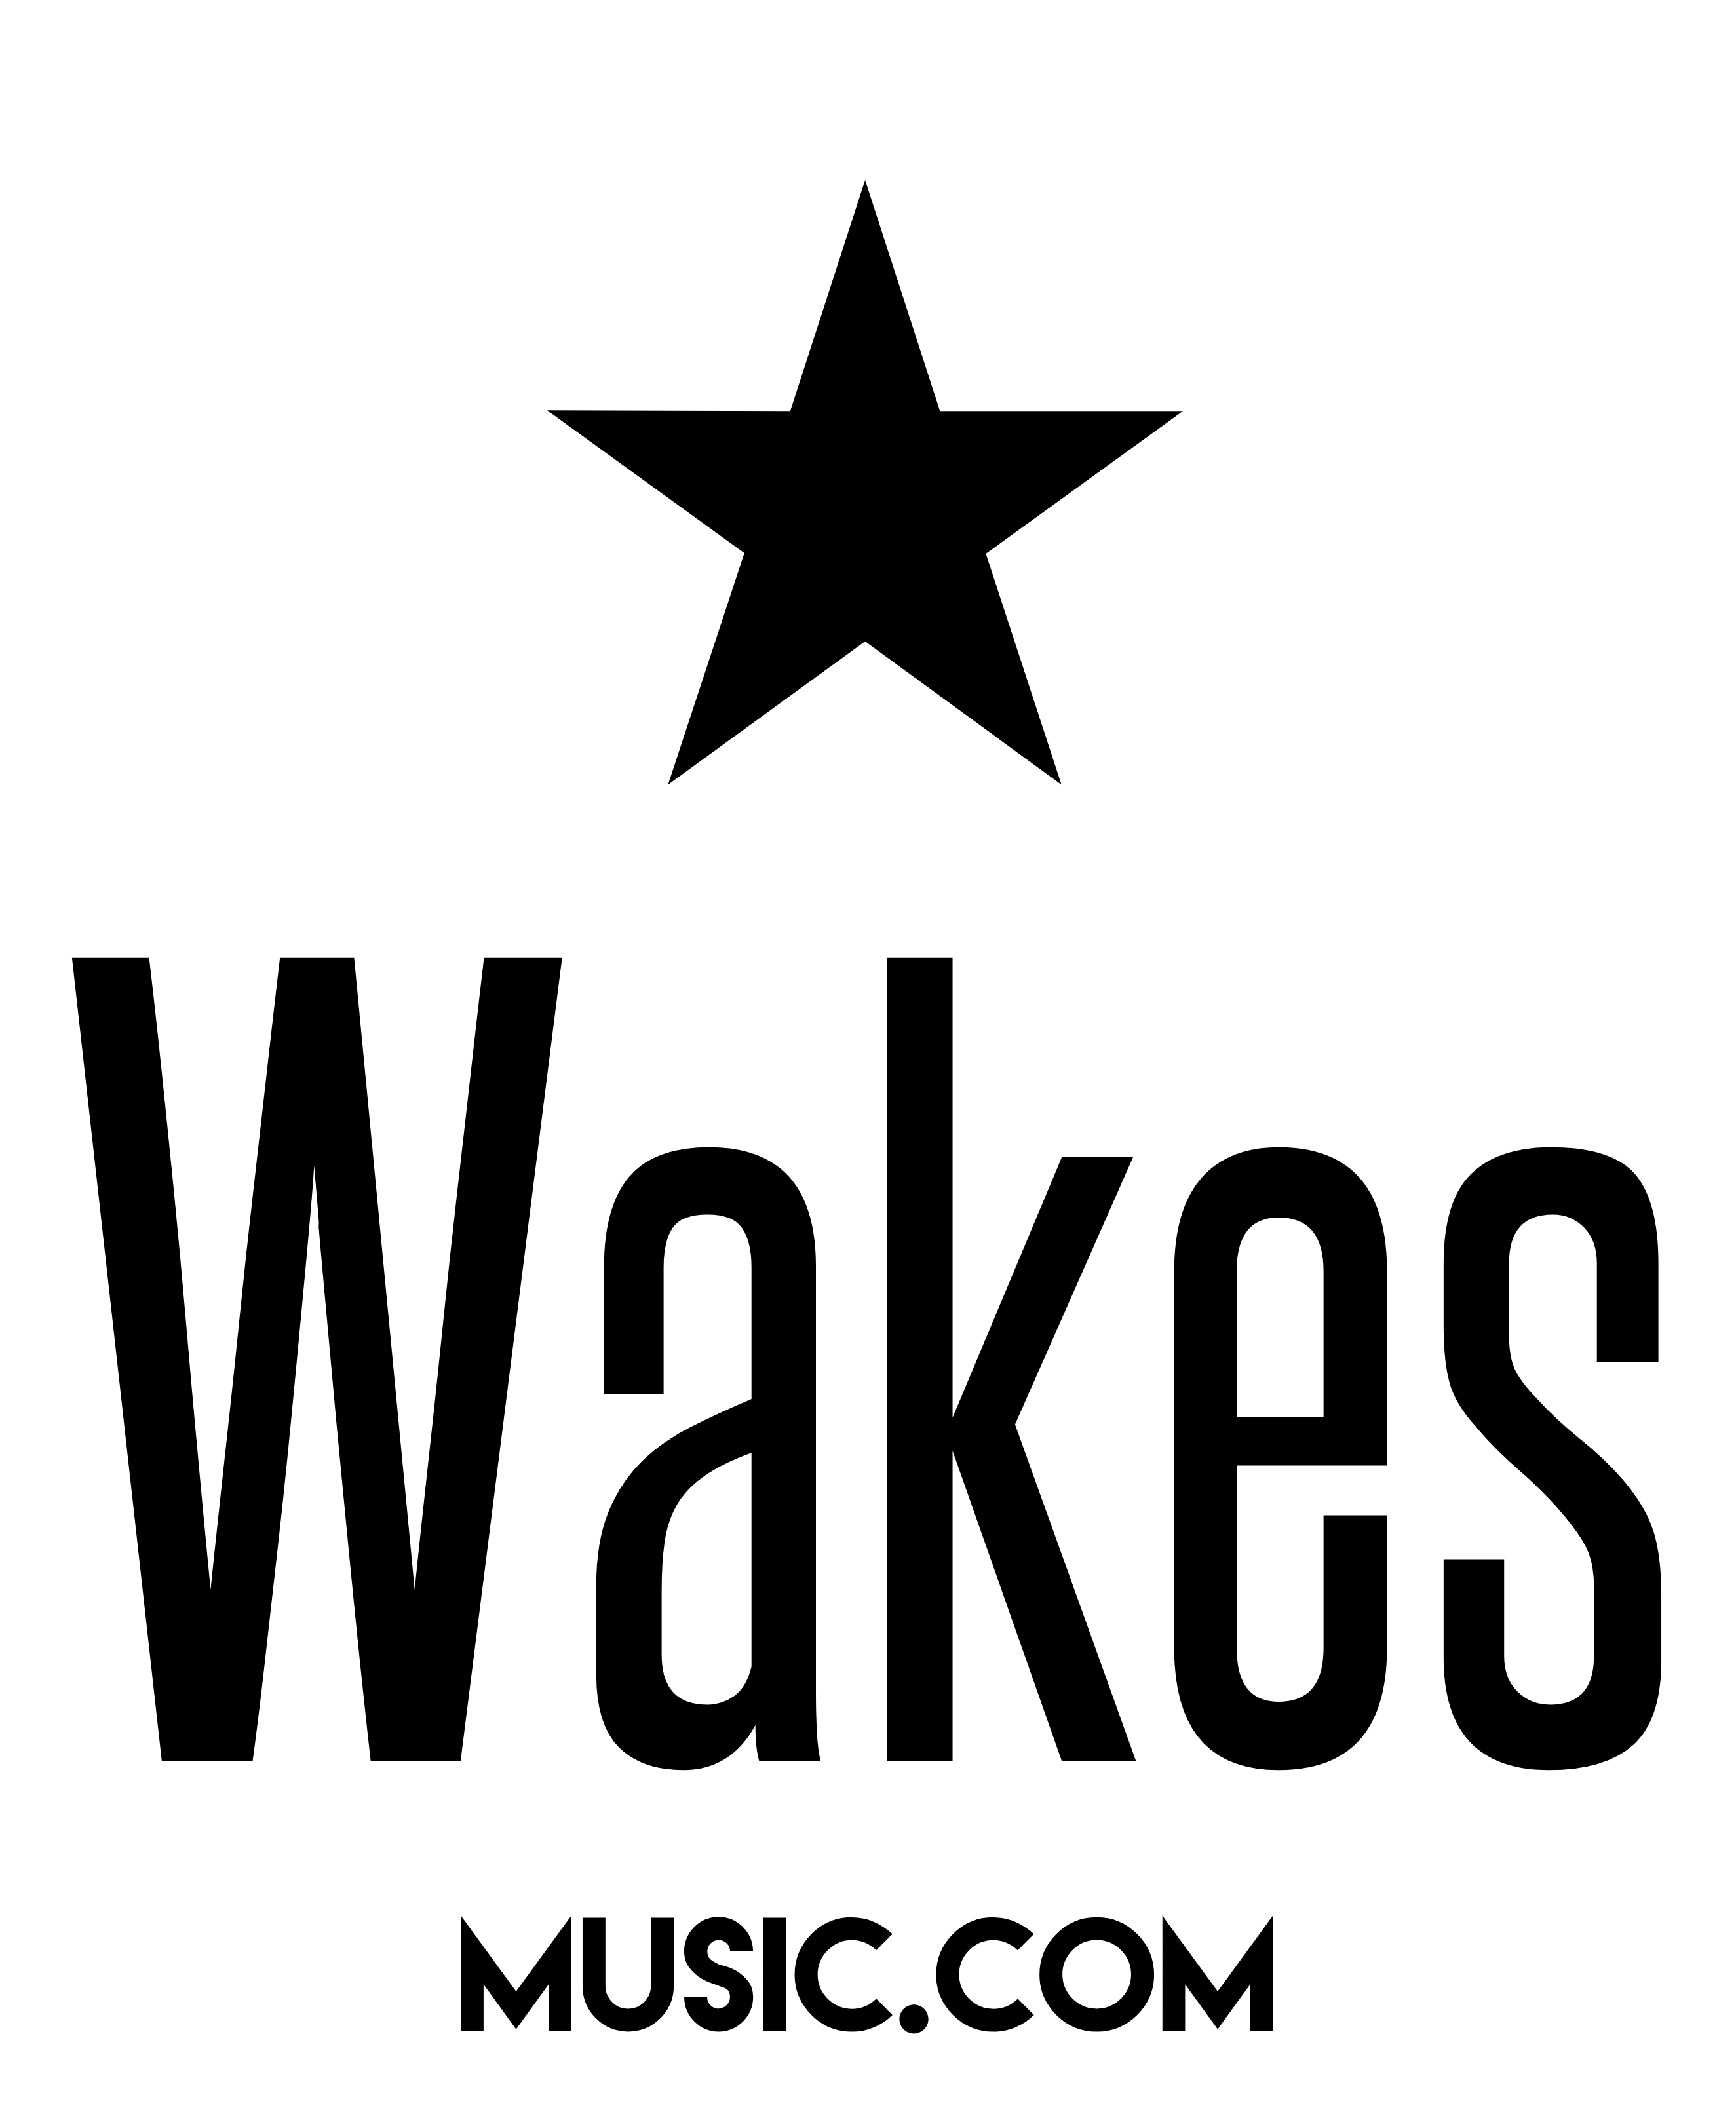 cropped-dark_logo_transparent2x.png